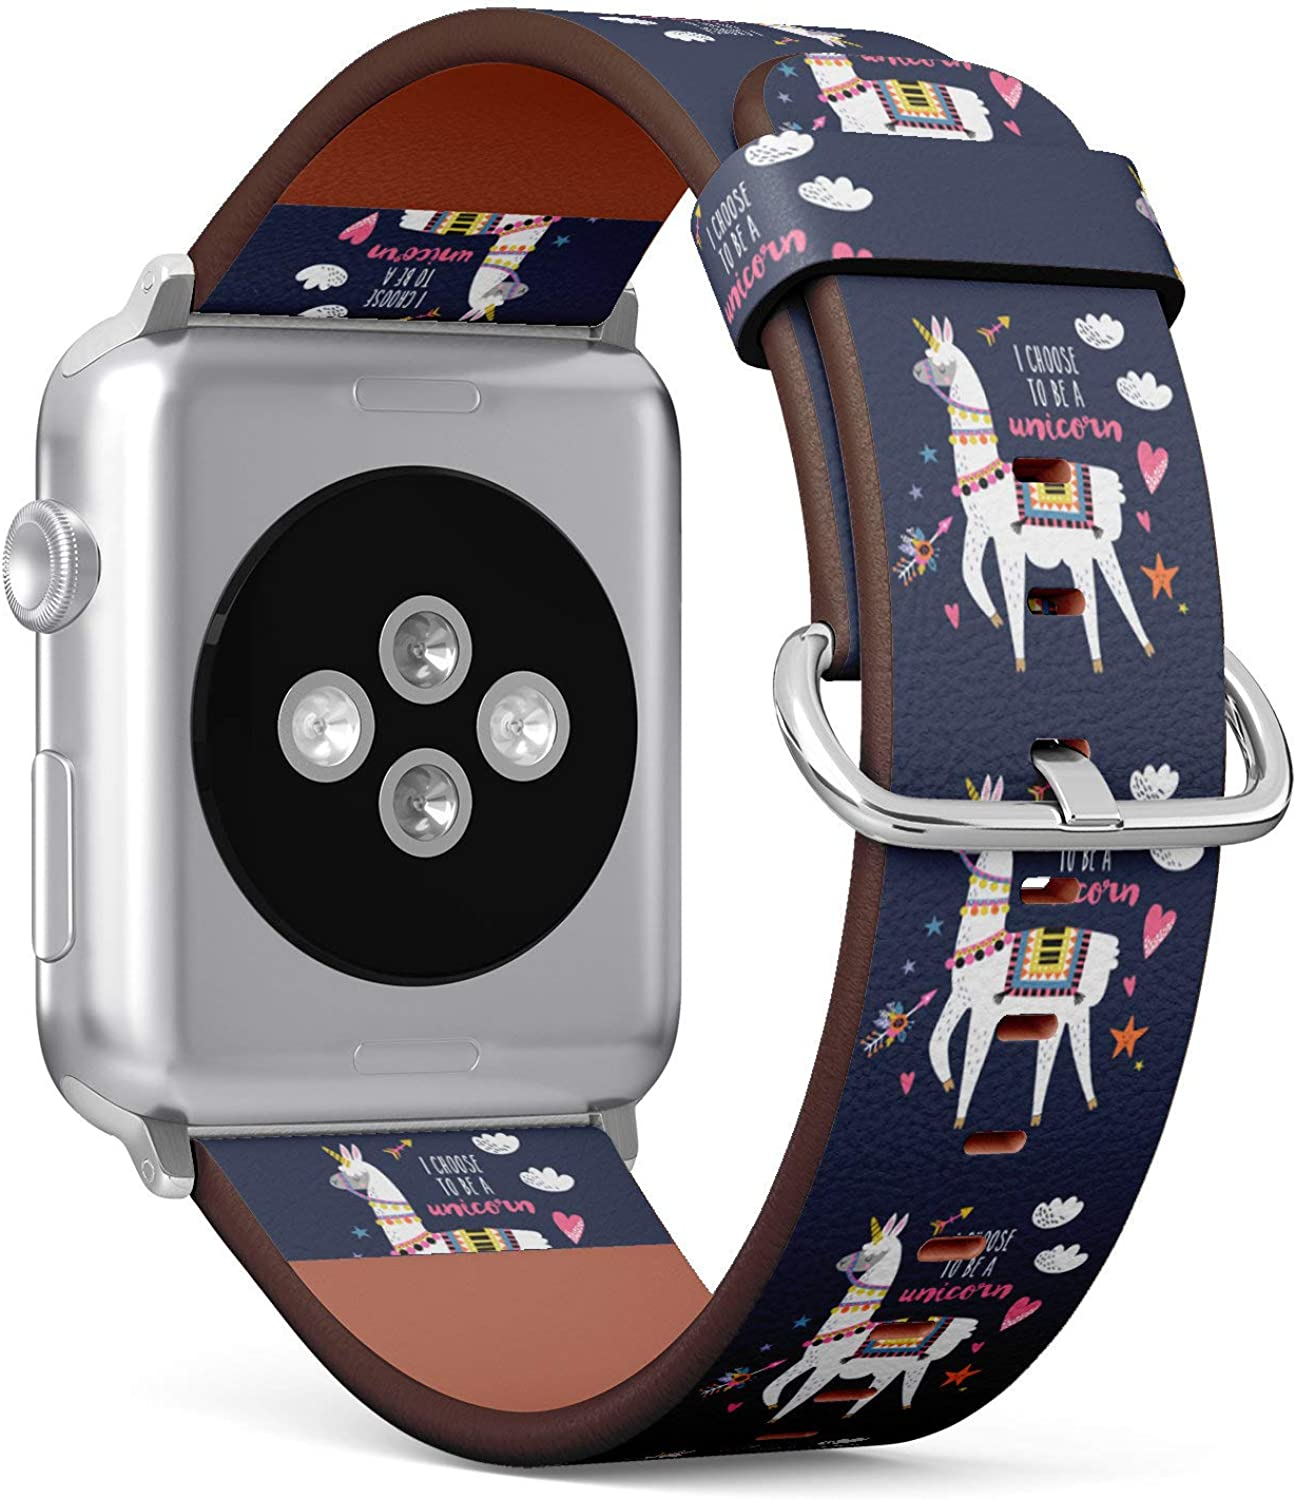 (Tribal Alpaca Llama) Patterned Leather Wristband Strap for Apple Watch Series 4/3/2/1 gen,Replacement for iWatch 38mm / 40mm Bands